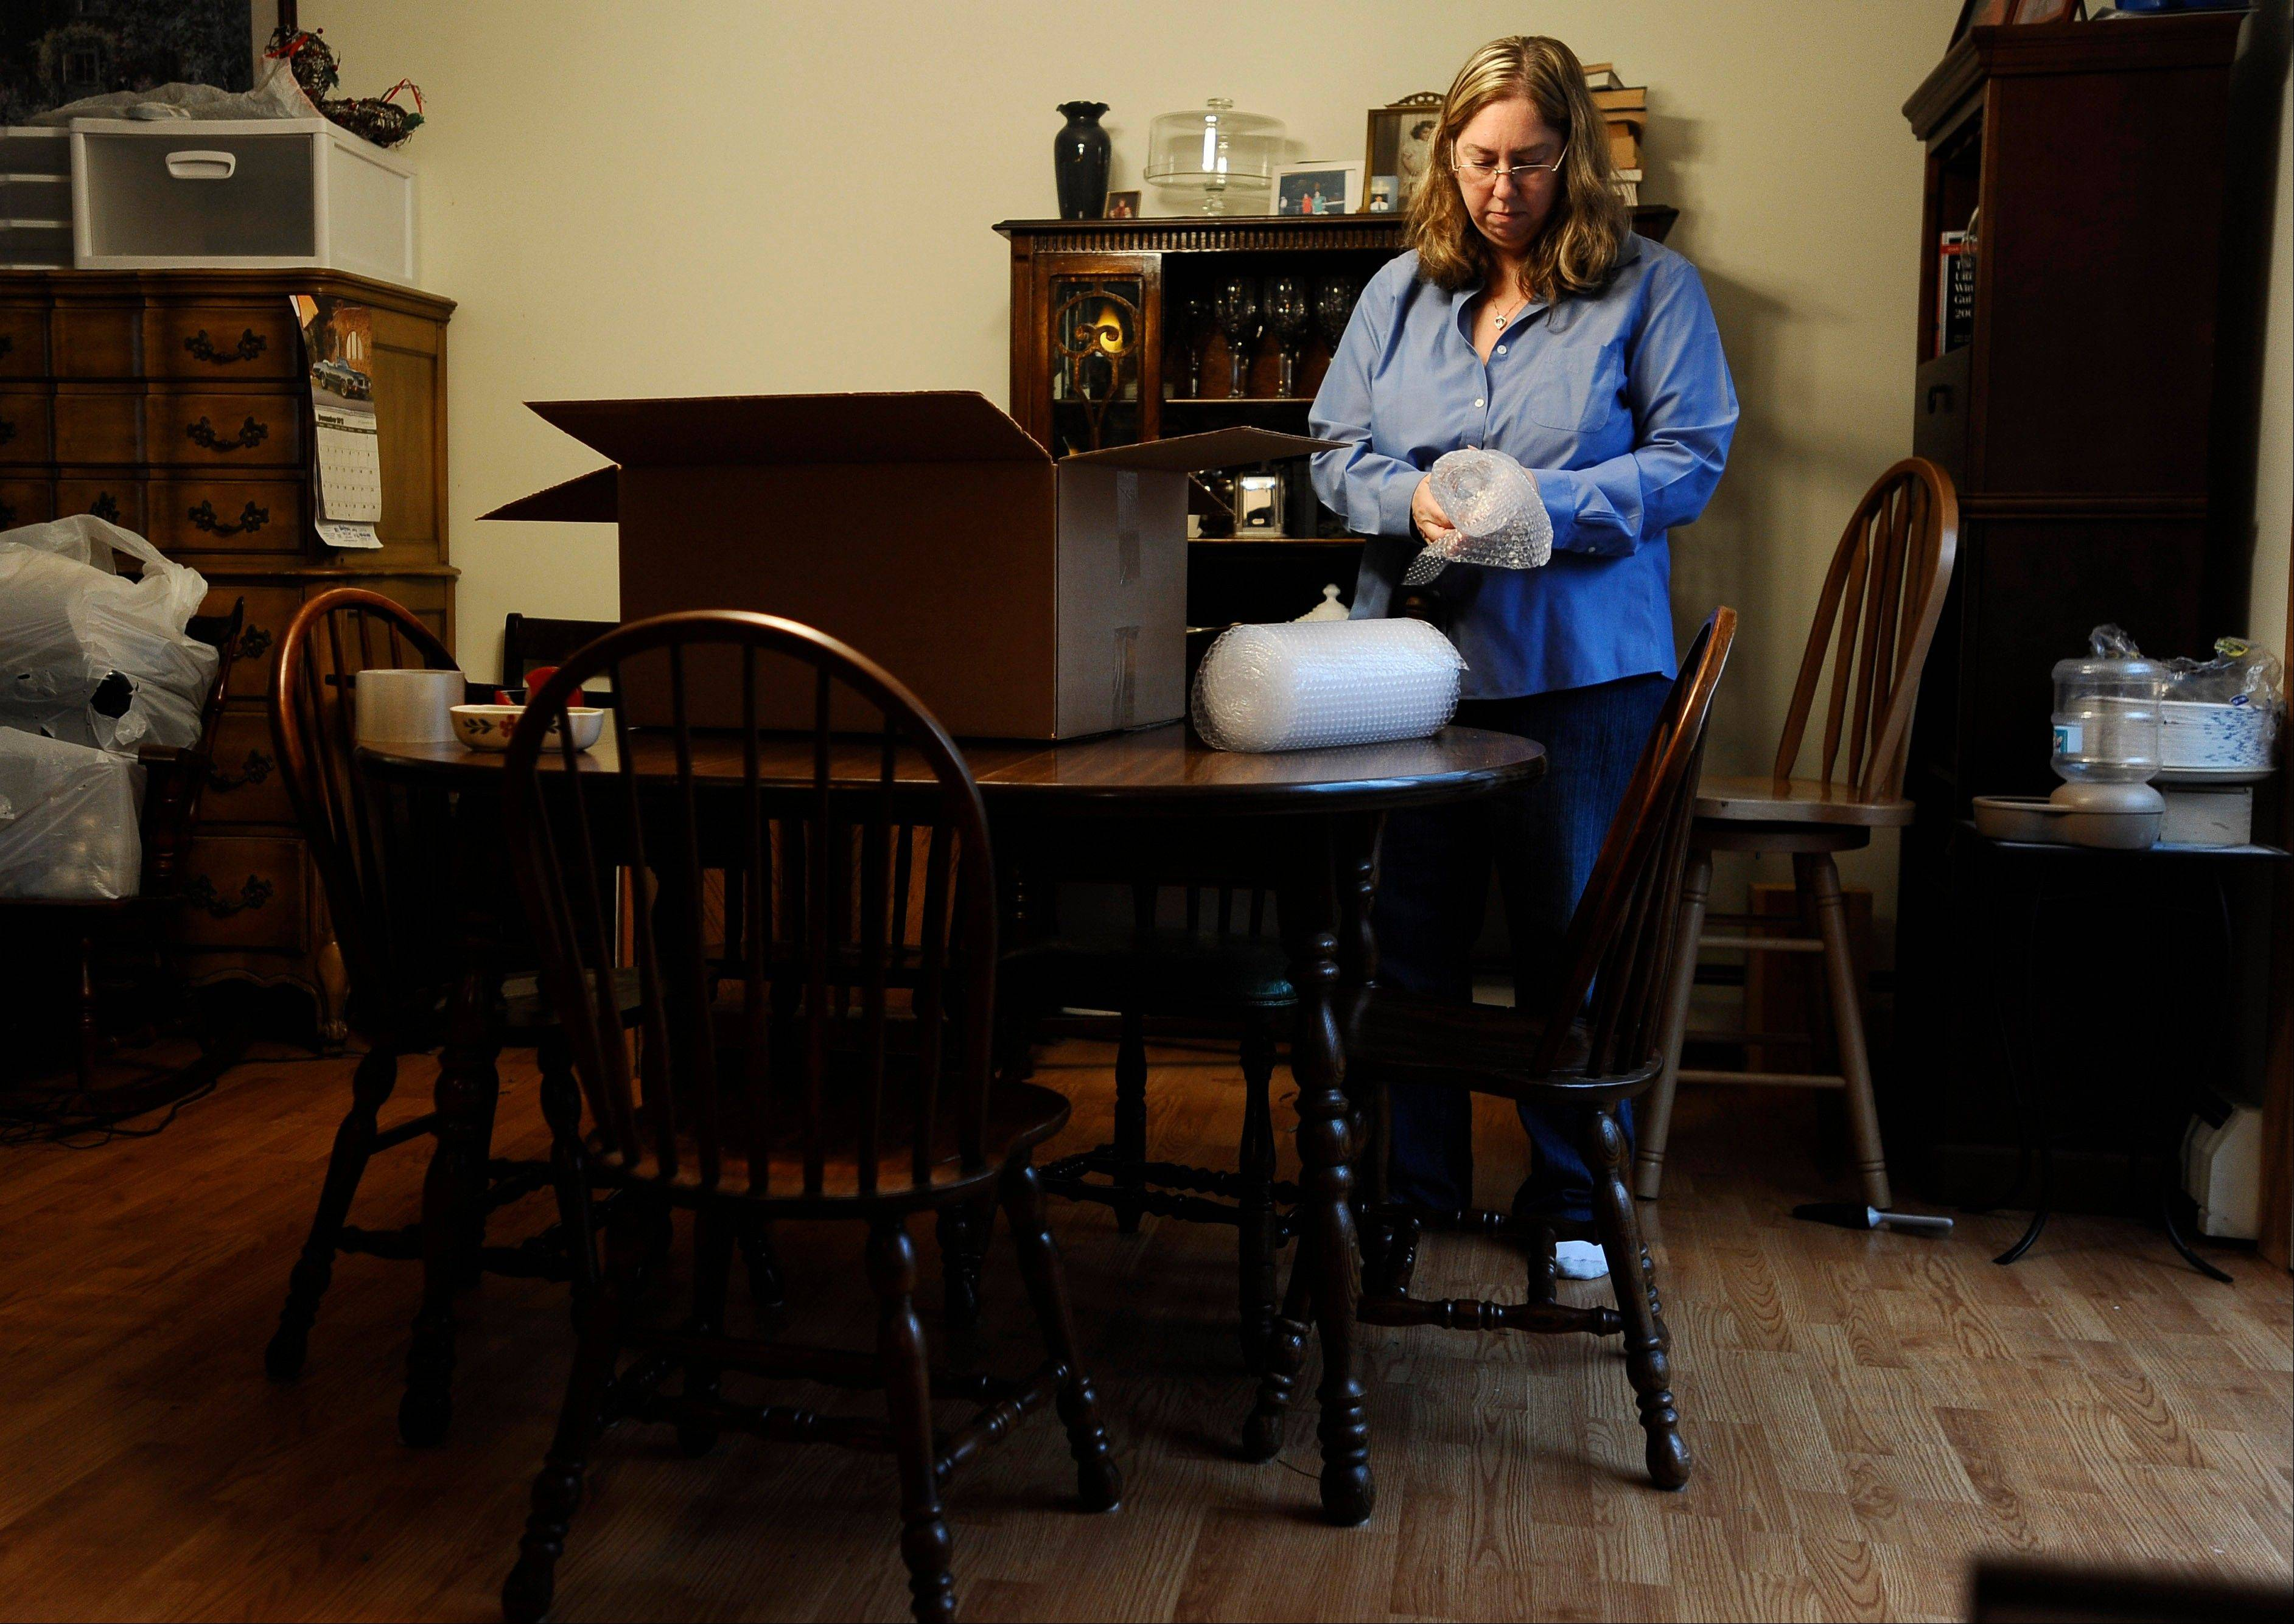 Leslie Lynch packs up belongings in her dining room in Glastonbury, Conn. Lynch, who lost her job last year, is moving out of her home of 21 years because she can no longer afford the mortgage payments.